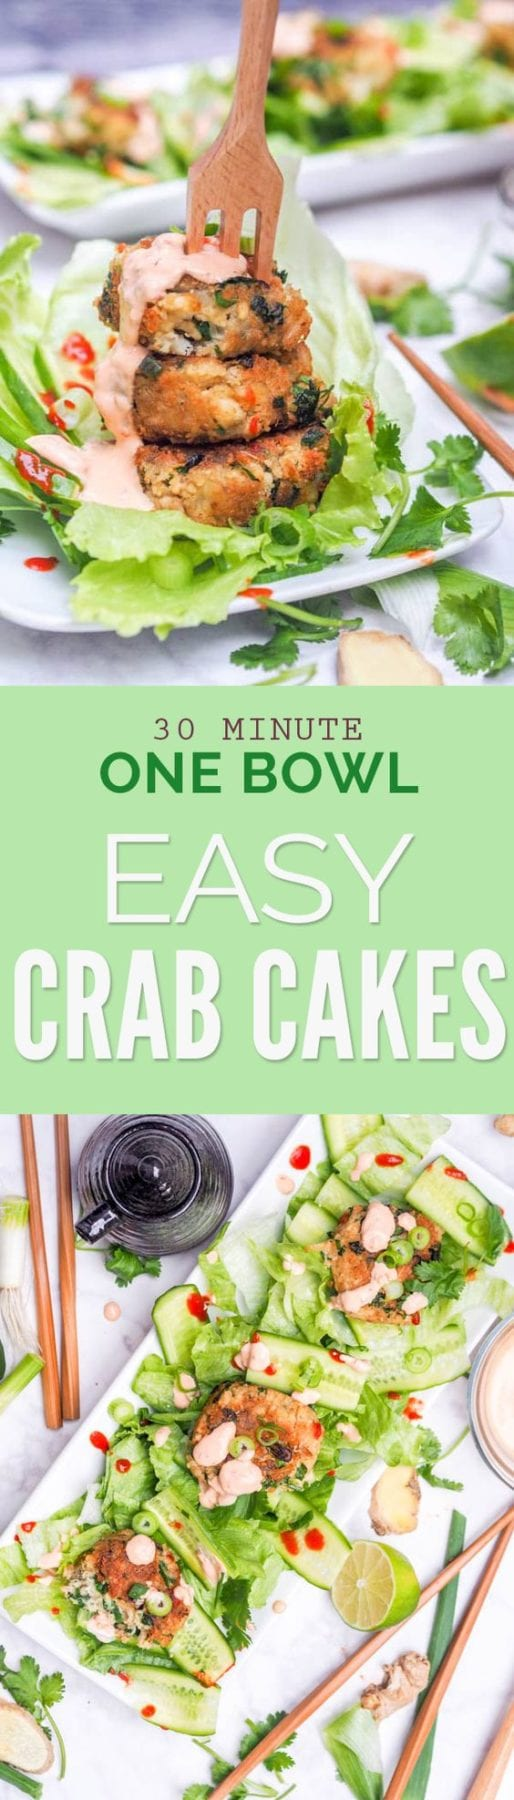 One bowl 30 minute Easy Crab Cakes with Asian flavors. Serve with a Chili Garlic Aioli for the ultimate light meal or appetizer. Gluten Free and Dairy Free. #crabcakes #seafood #healthy #glutenfree #dairyfree #appetizer